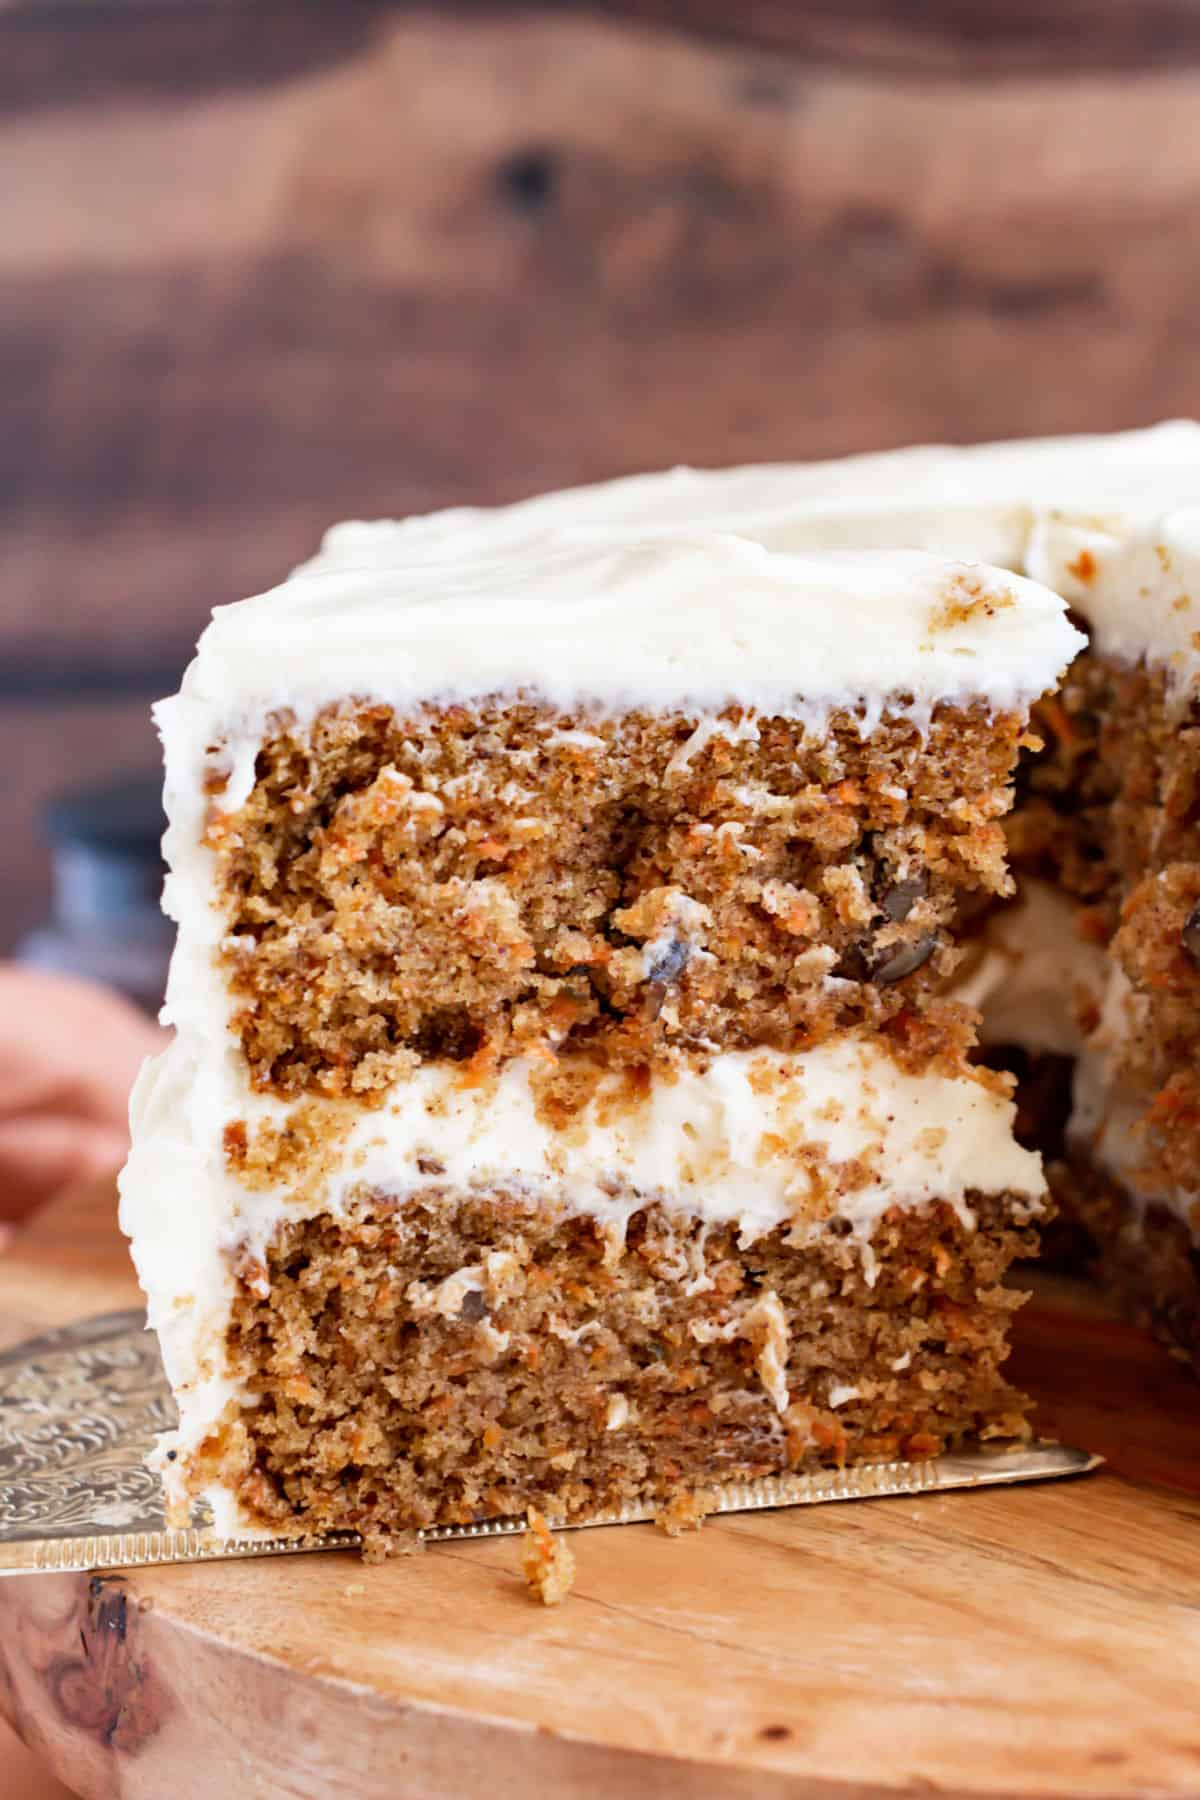 Double layer carrot cake with cream cheese frosting on a wood cake platter.